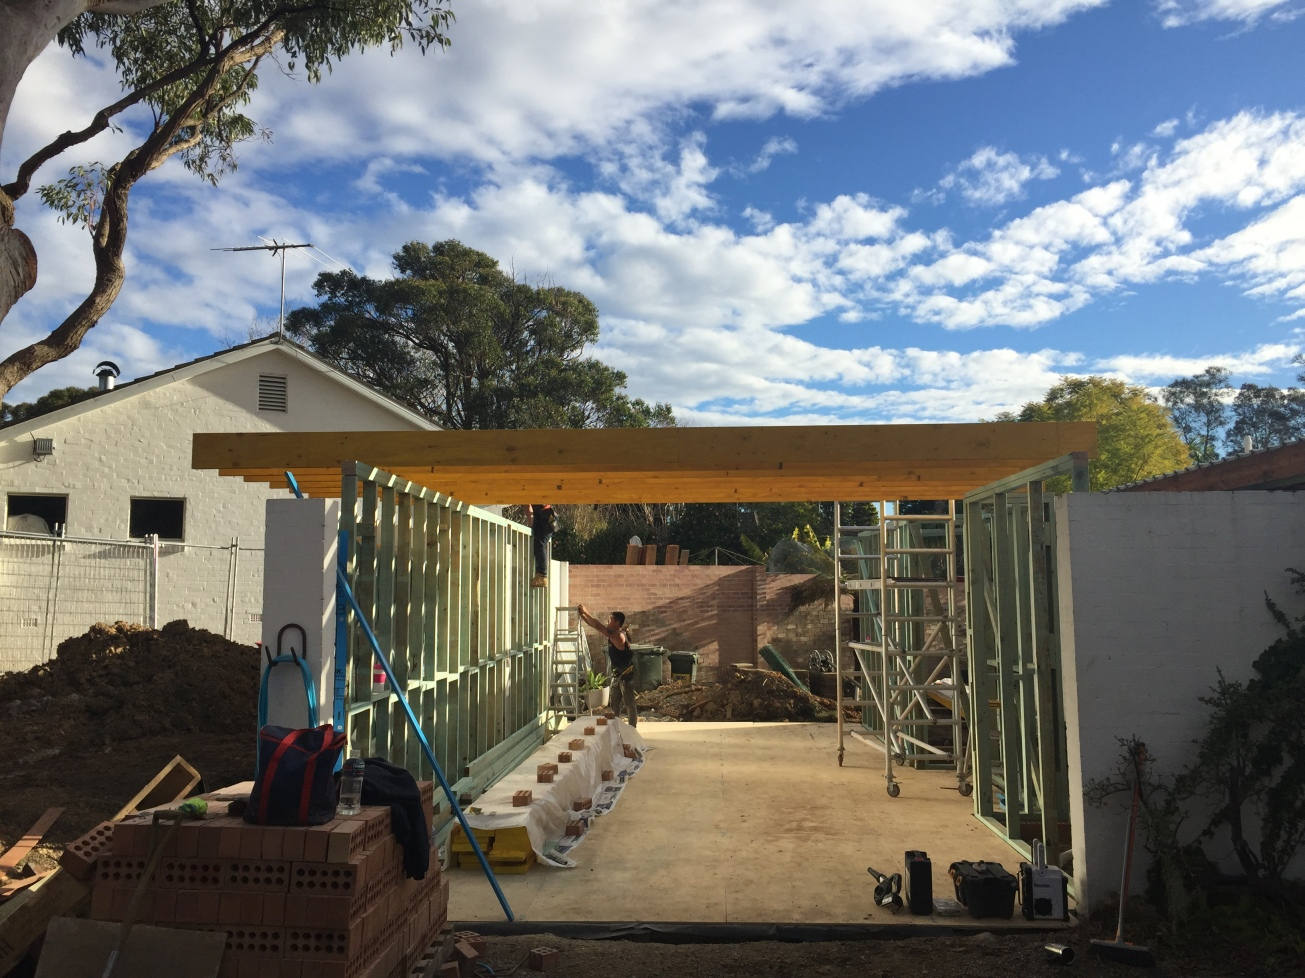 August 2016: With the first part of the extension all framed up and windows in, the team begins construction of the new master bedroom over the old carport. This shows the slab has been laid and the original brick wall has been reinforced ready for framework. 9 metres of concrete was quite something. As the carports in most P&S homes were at the side or front of the property, you can see ours here at the front and adjacent to the neighbour's garage. Luckily we are not looking down on their home.